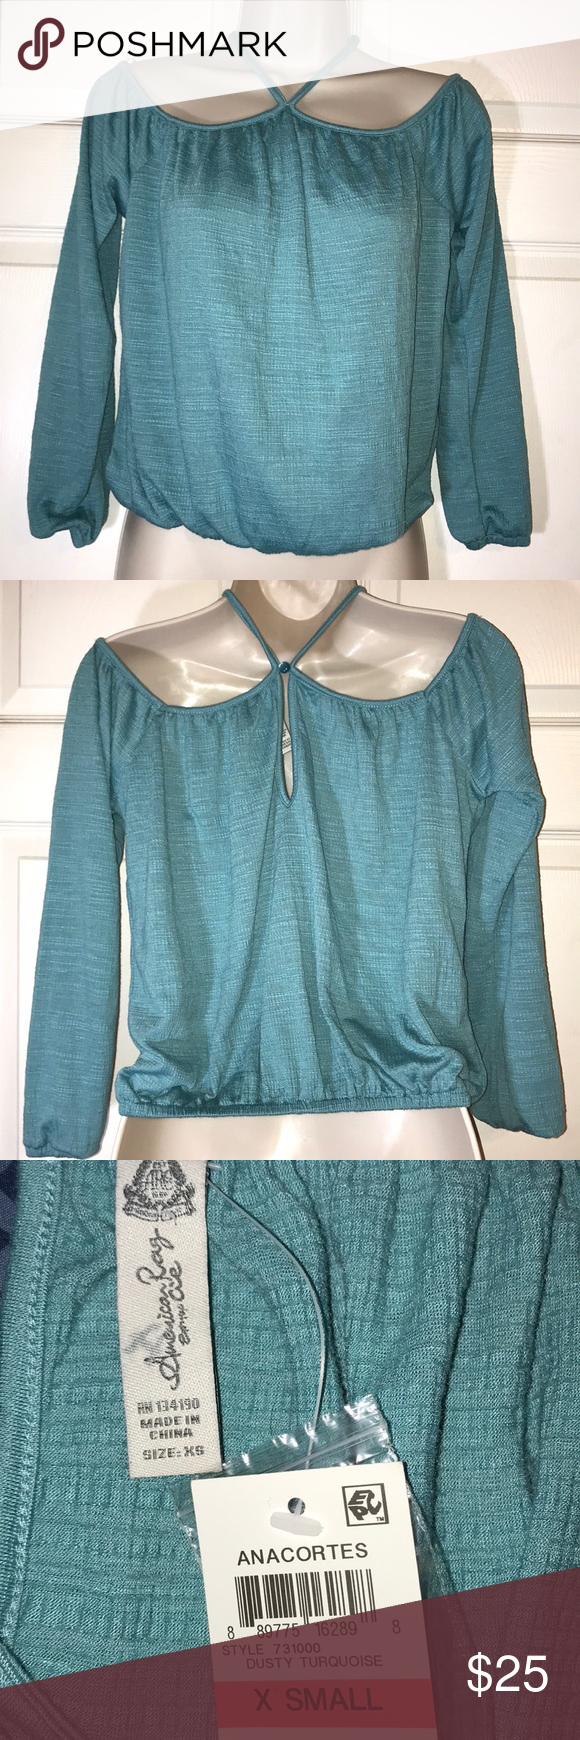 3f75a40d9361bb American Rag Dusty Turquoise cold shoulder top Top is NWT. There is a  letter written